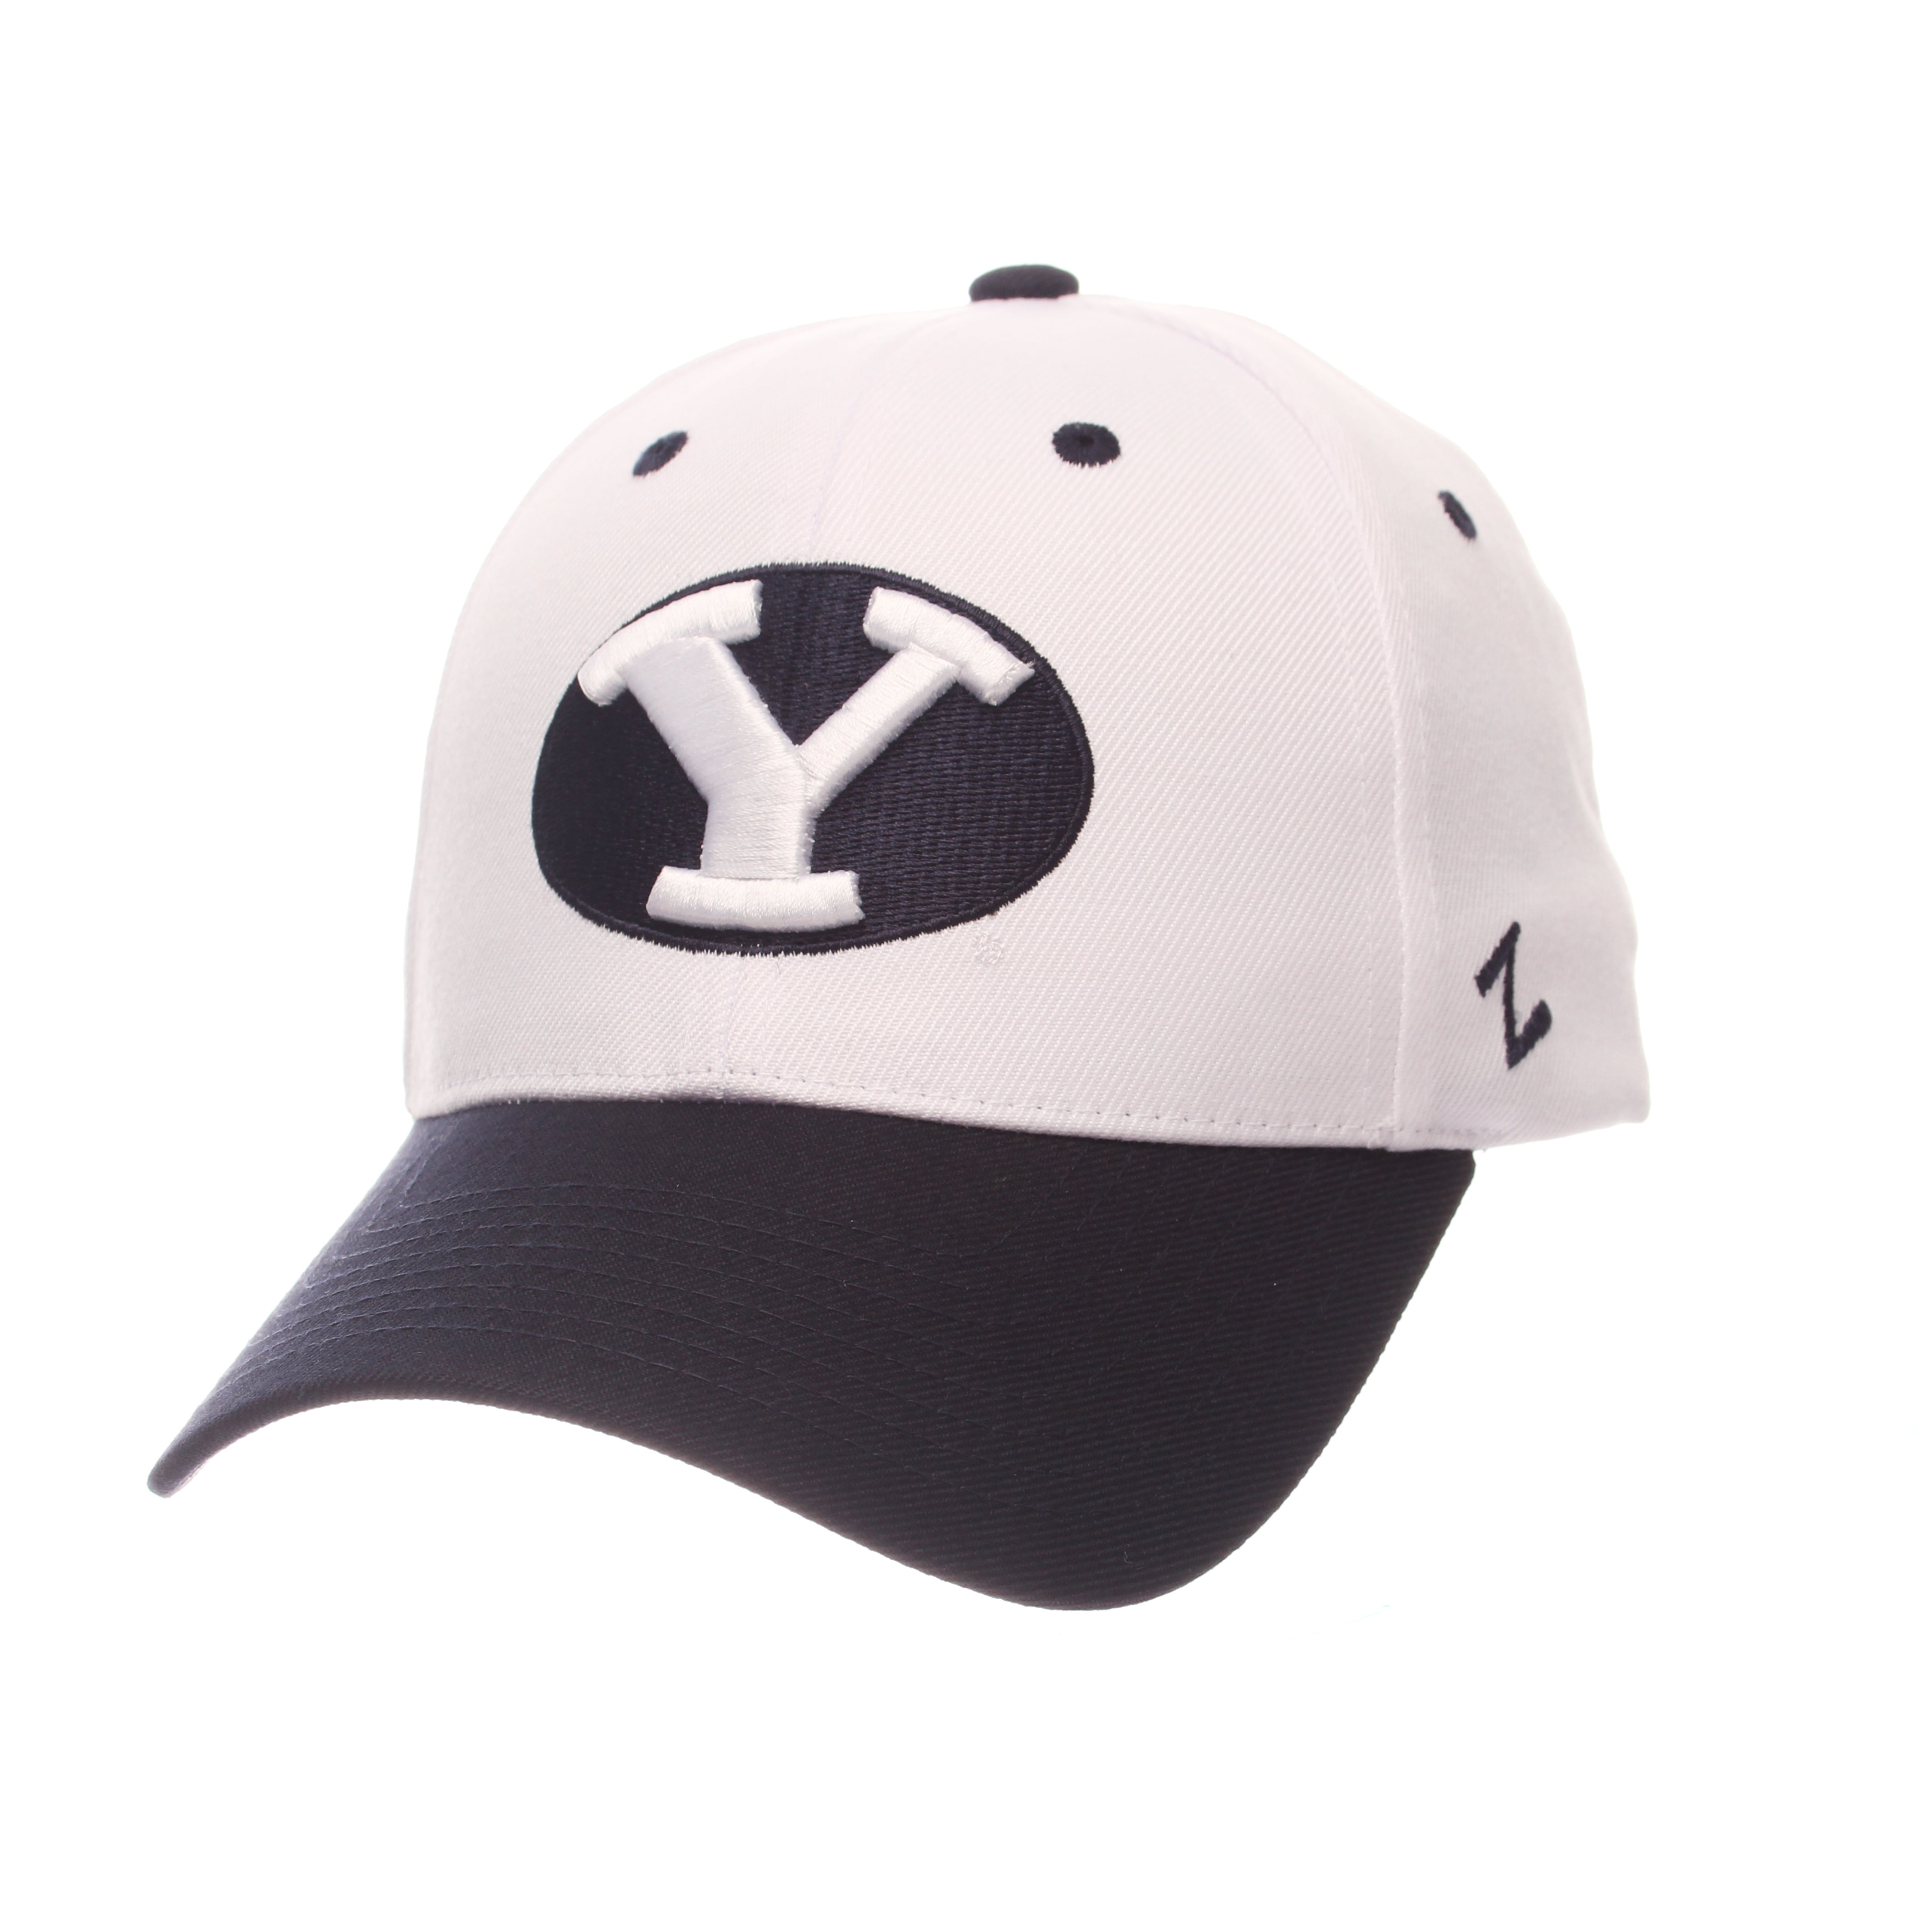 Brigham Young University Competitor Standard (Low) (Y OVAL) White Zwool Adjustable hats by Zephyr